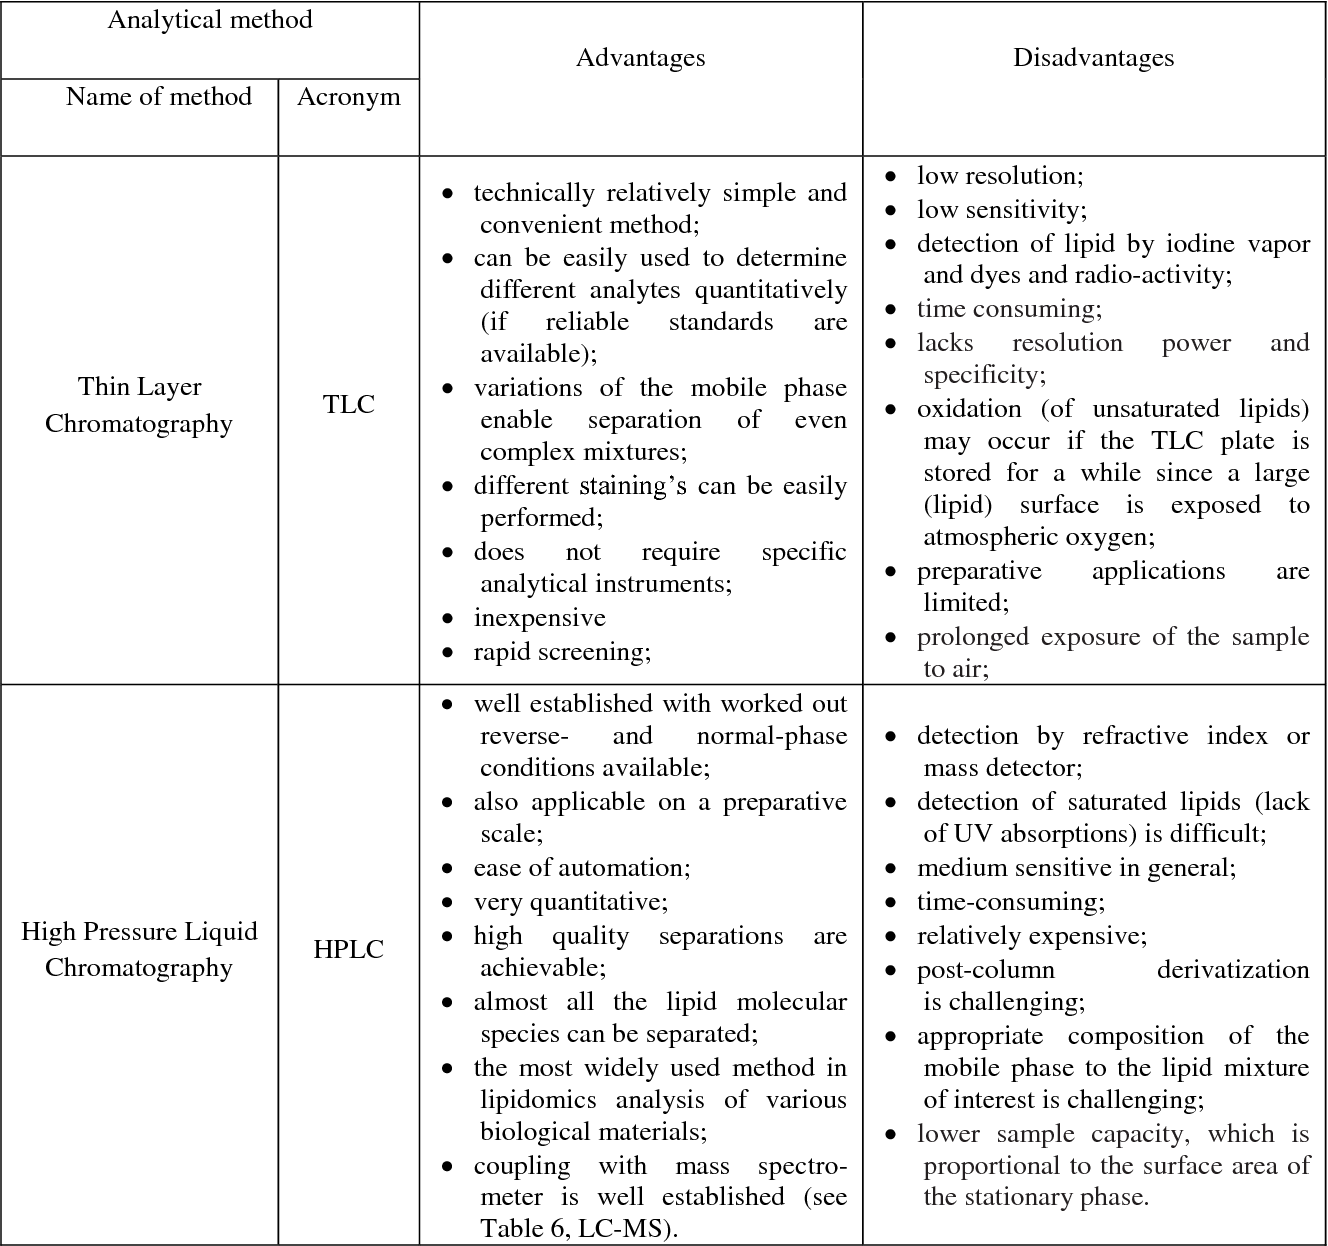 Table 2 from Analytical Techniques in Lipidomics: State of